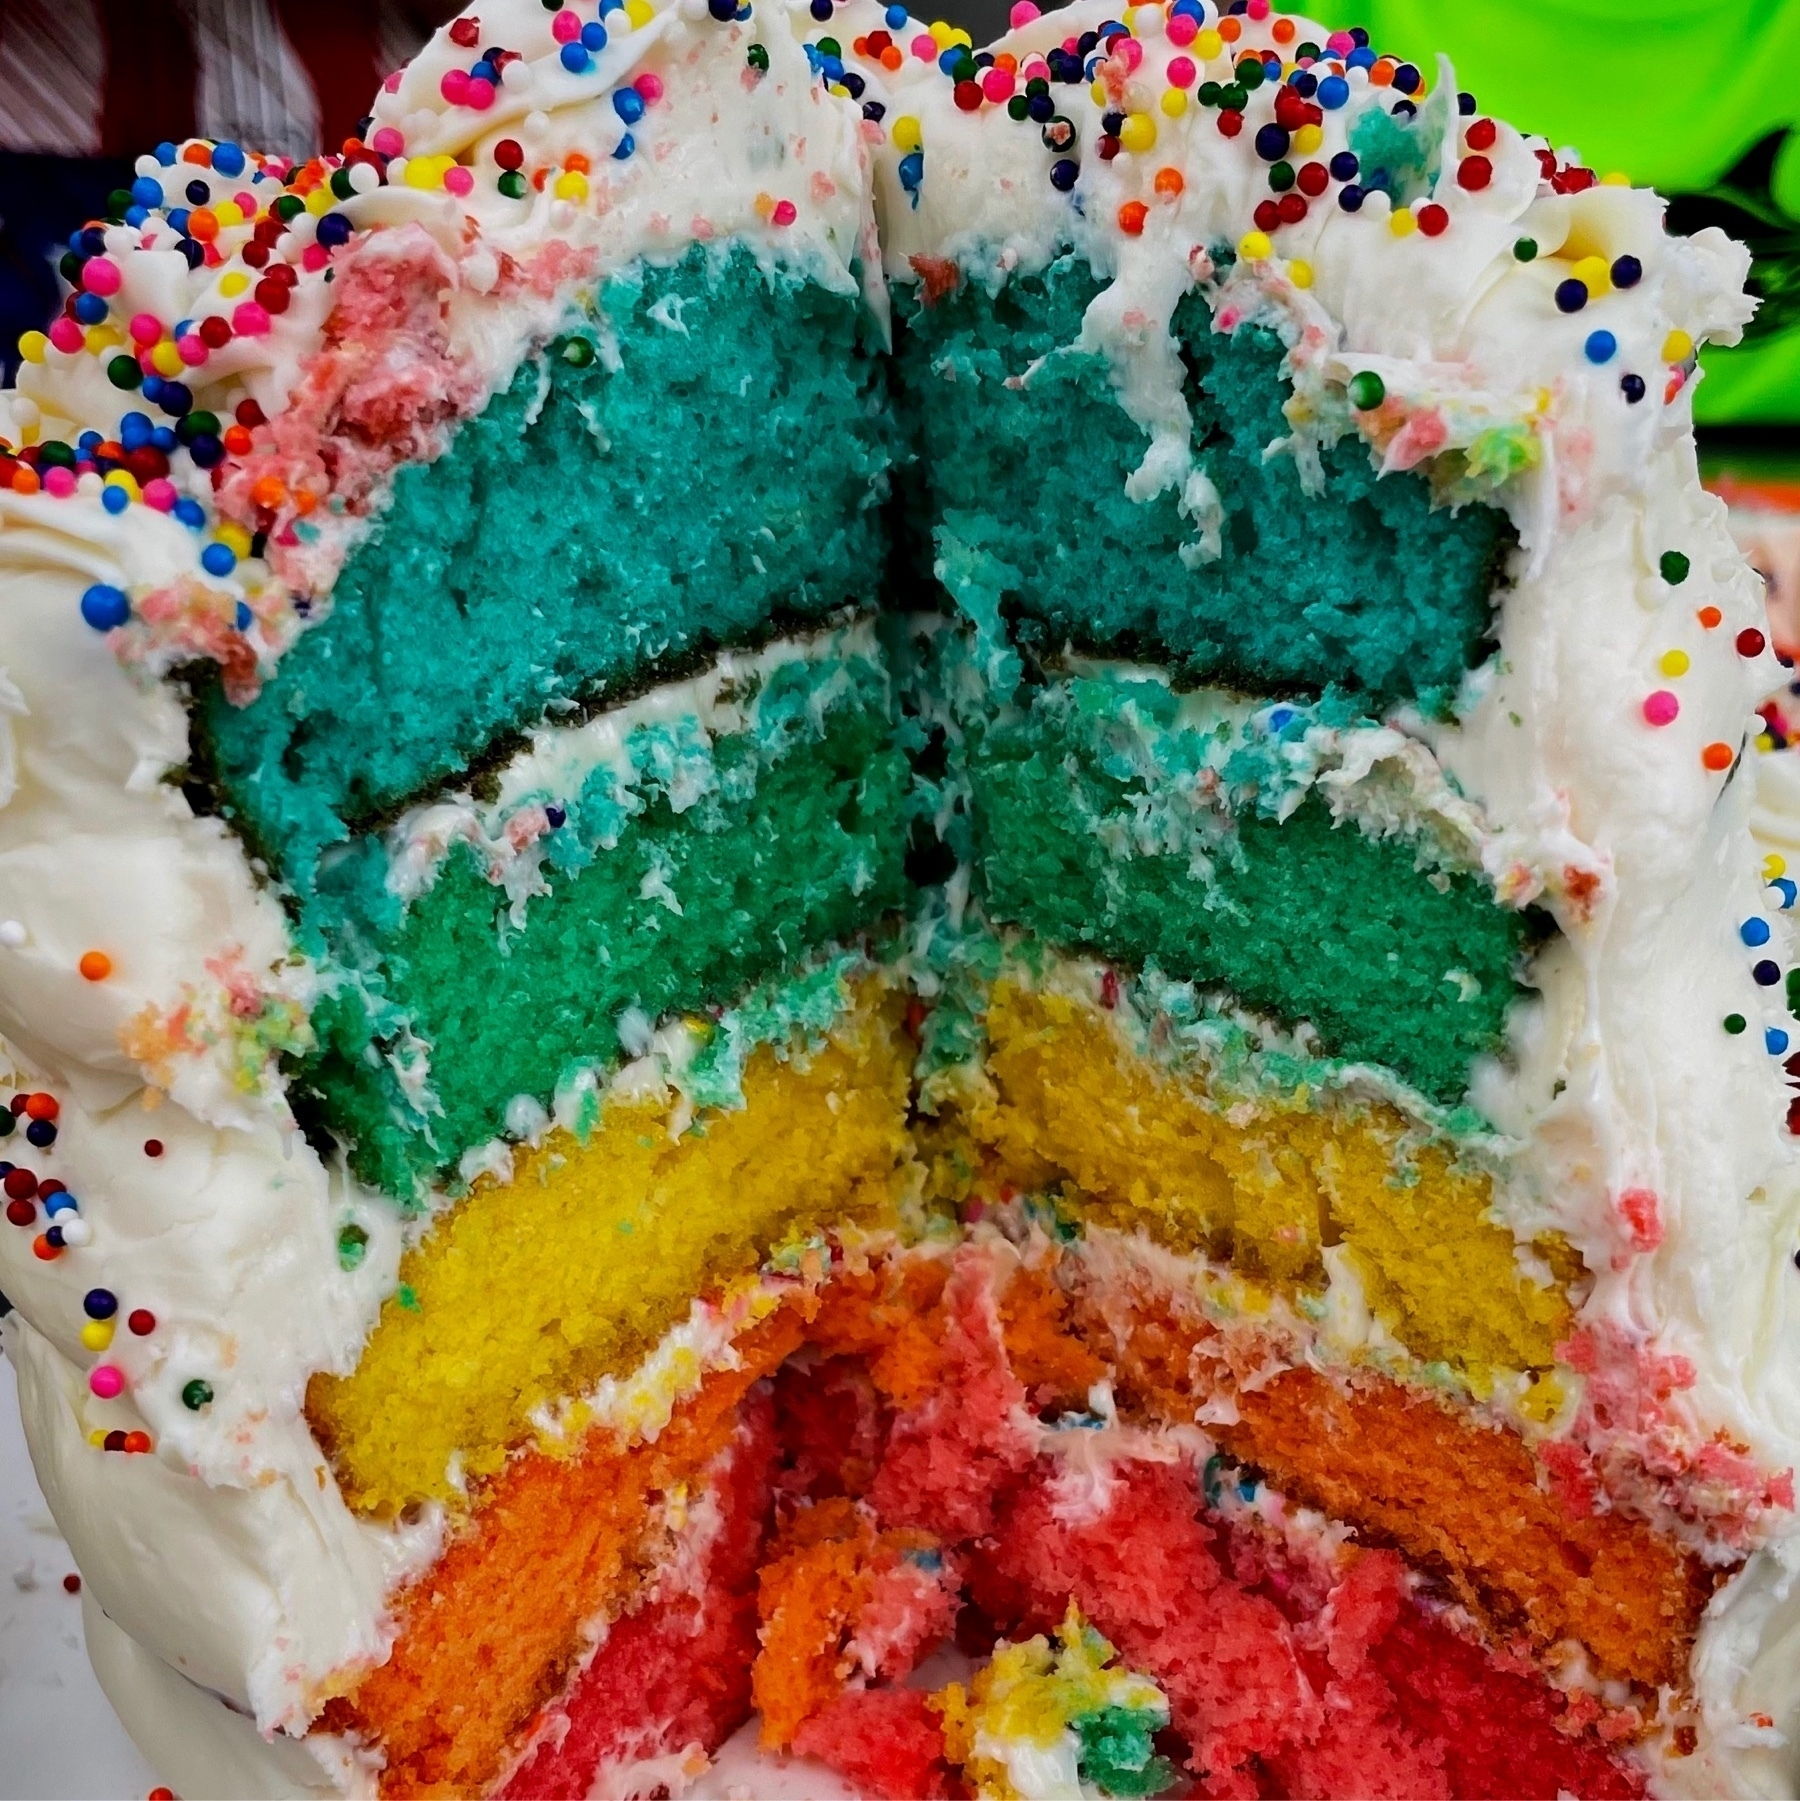 colorful inside of a cake